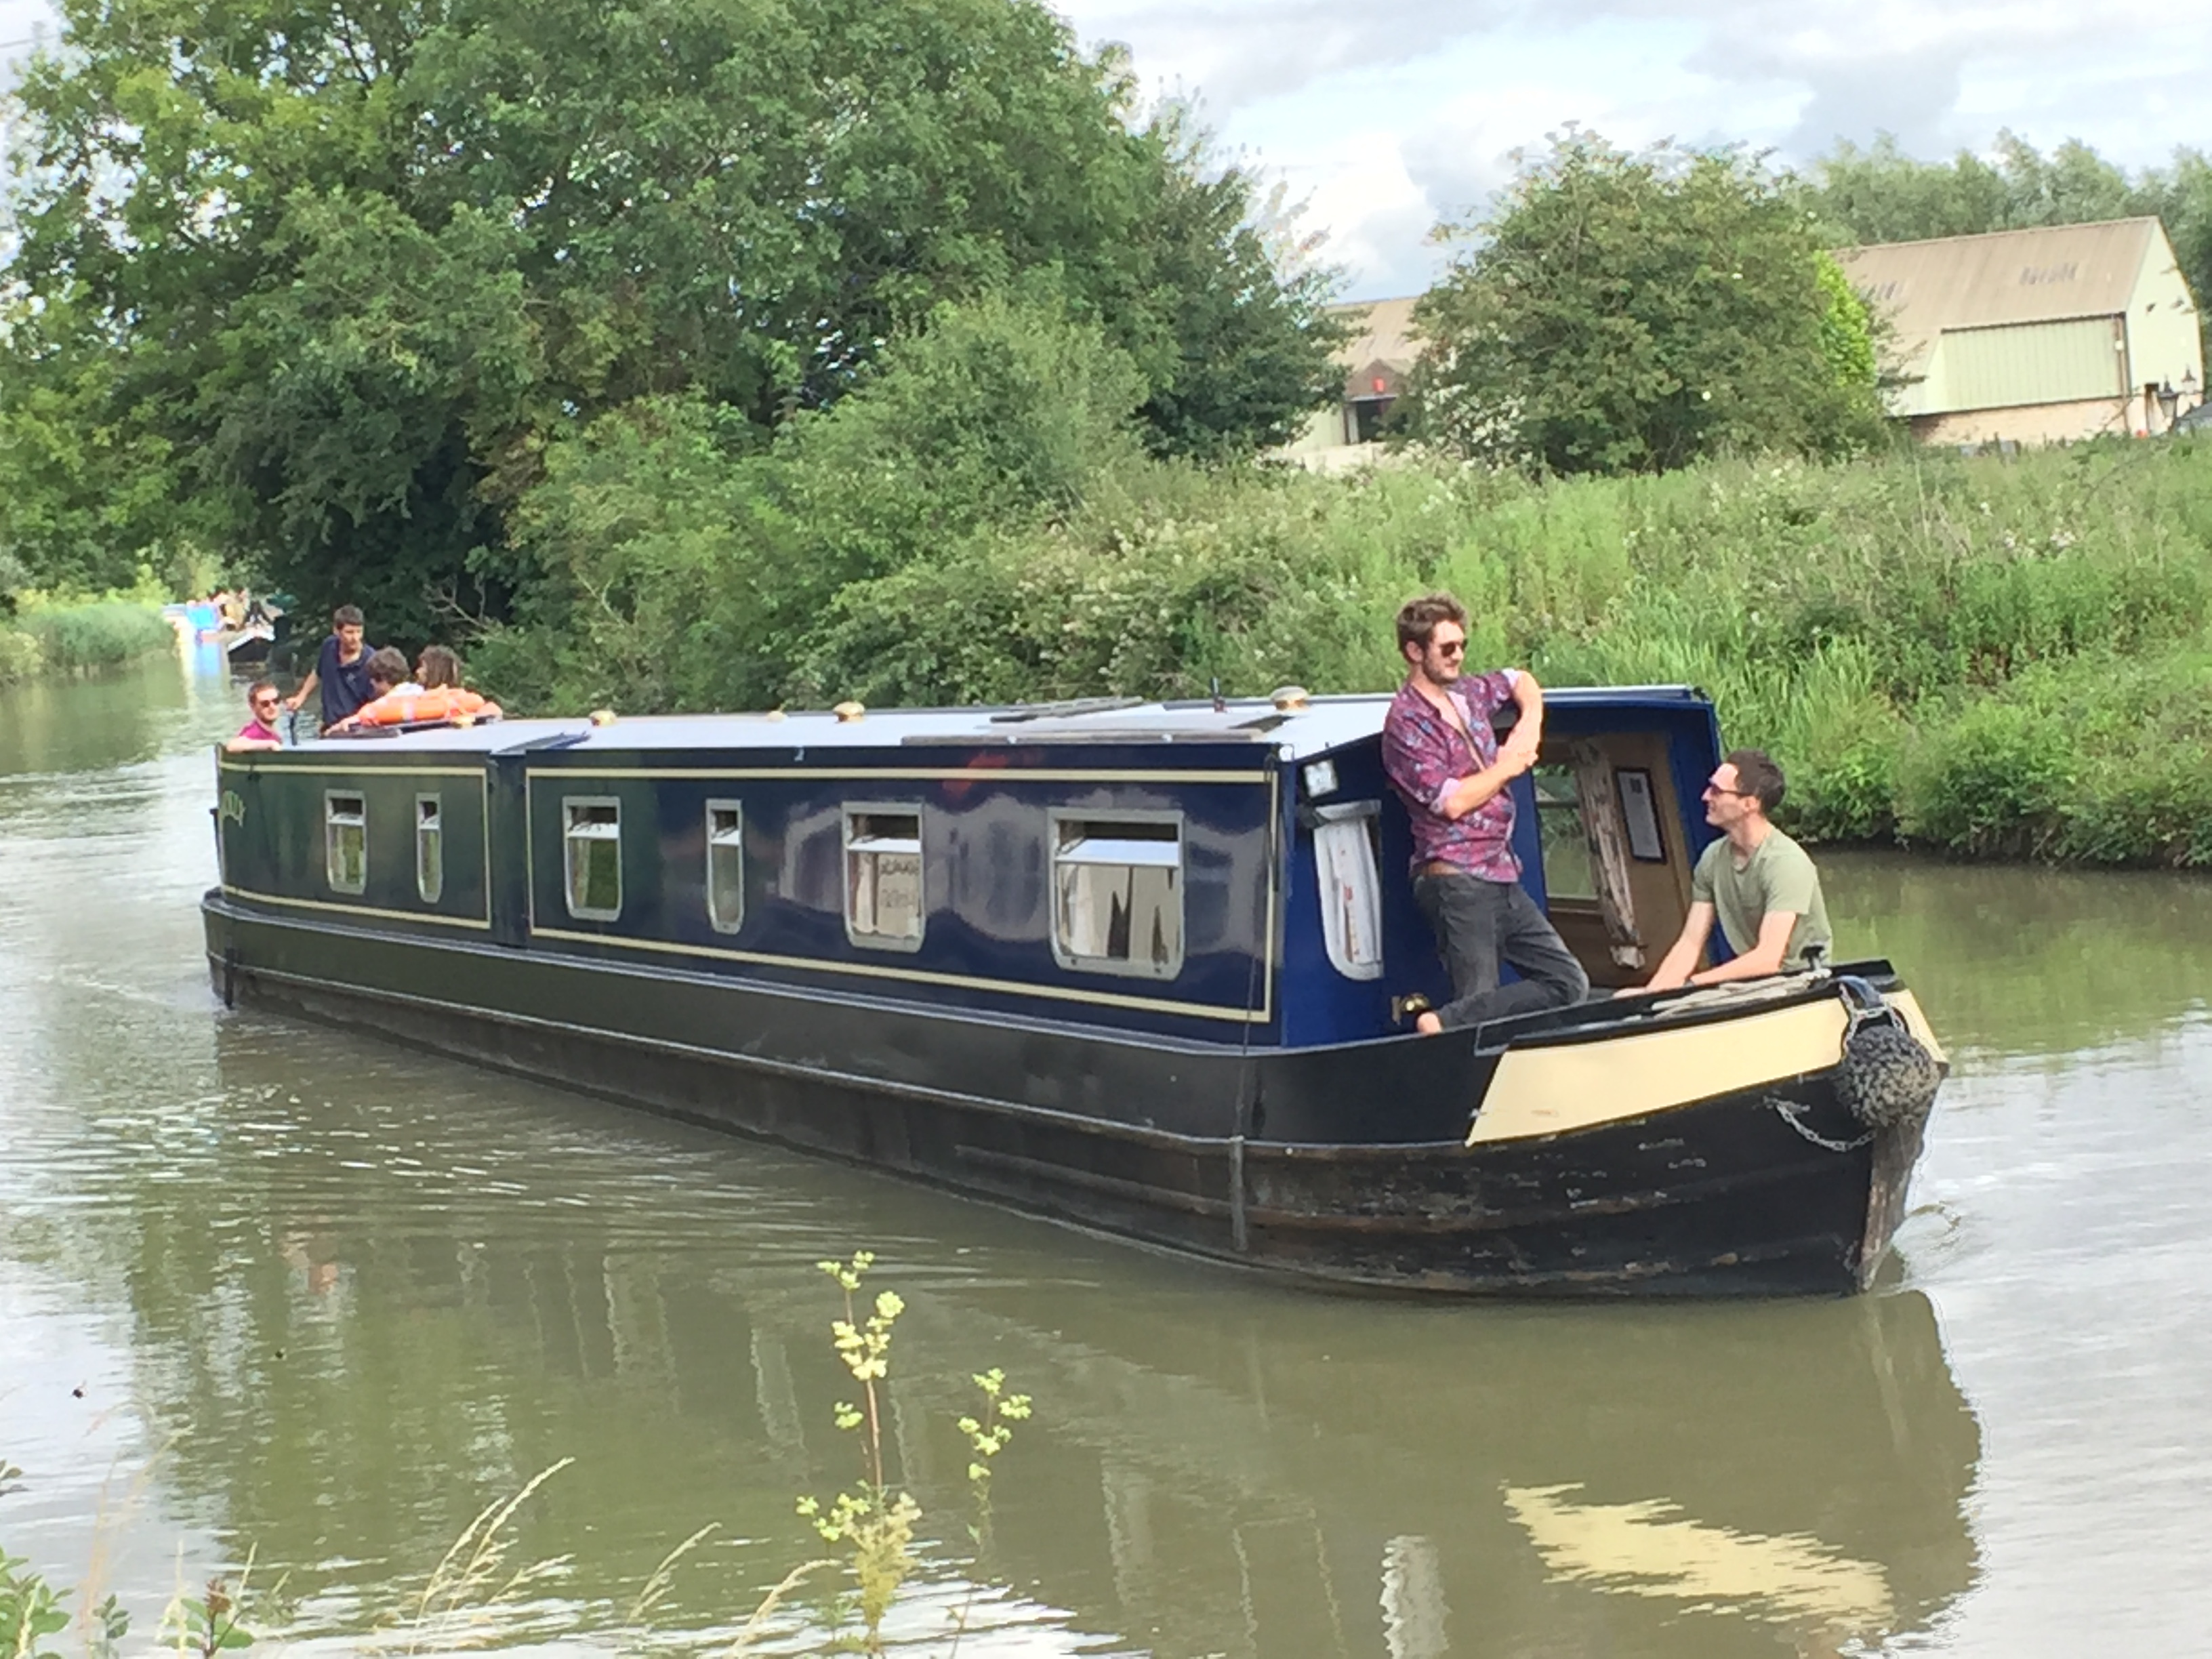 The S-Molly class canal boat